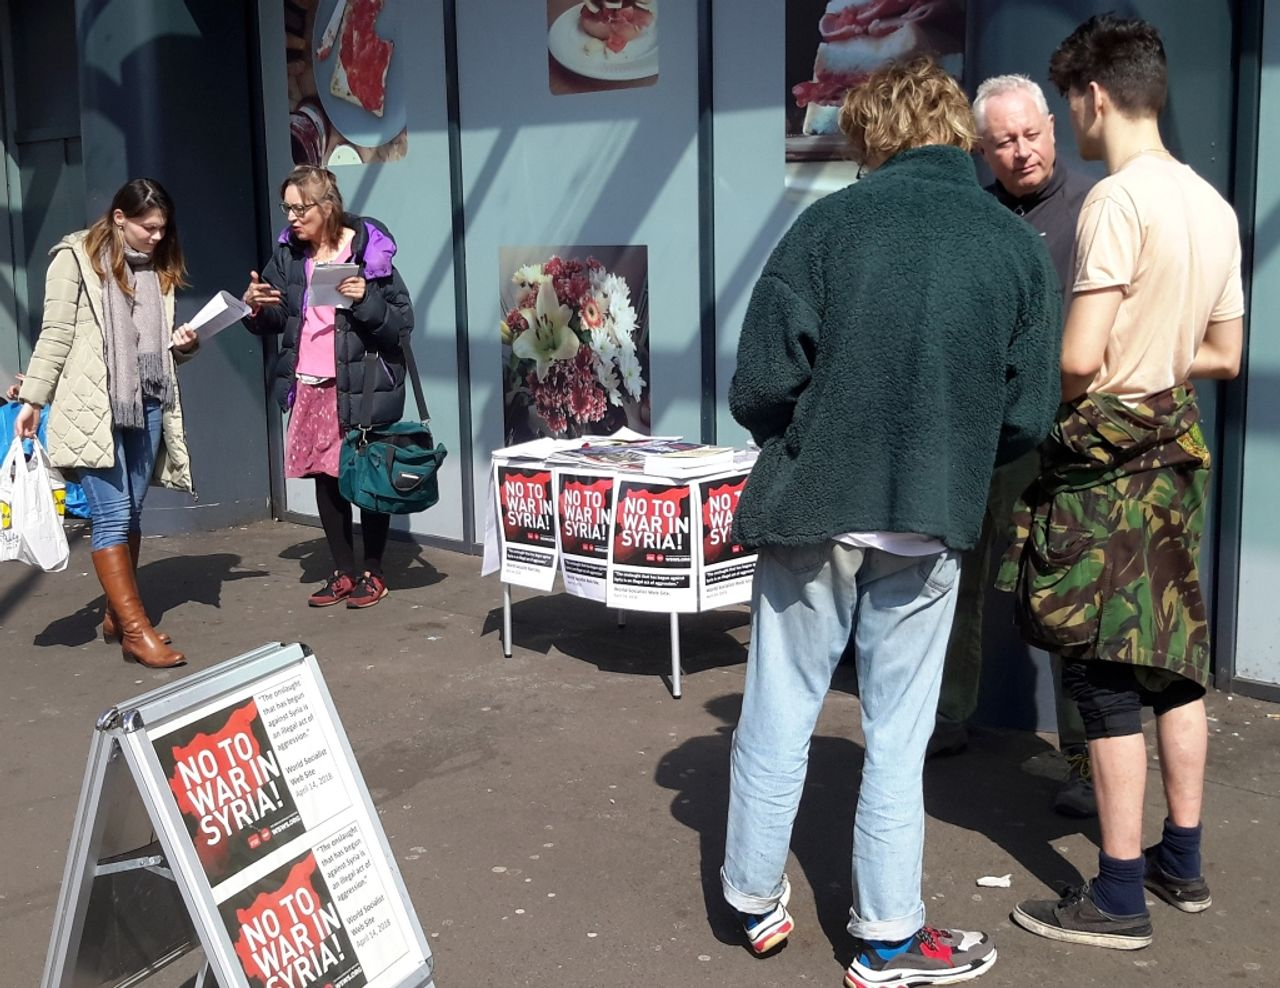 People discuss the military strikes in Syria at the Socialist Equality Party stall in Manchester